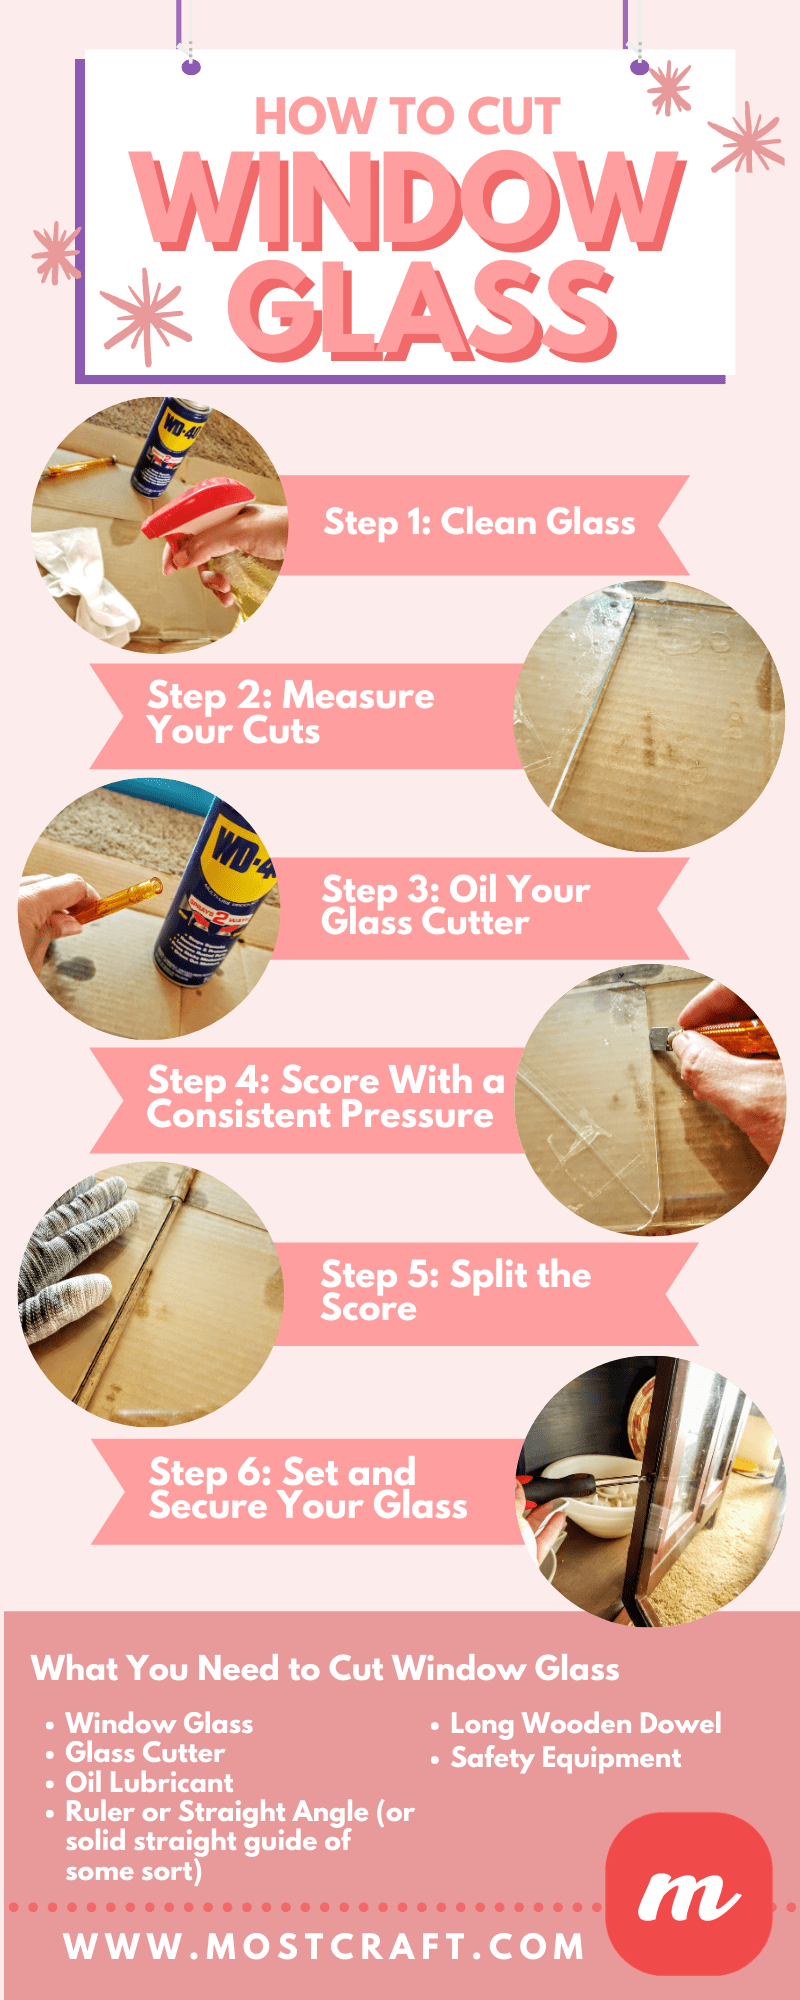 How to Cut Window Glass - Infographic